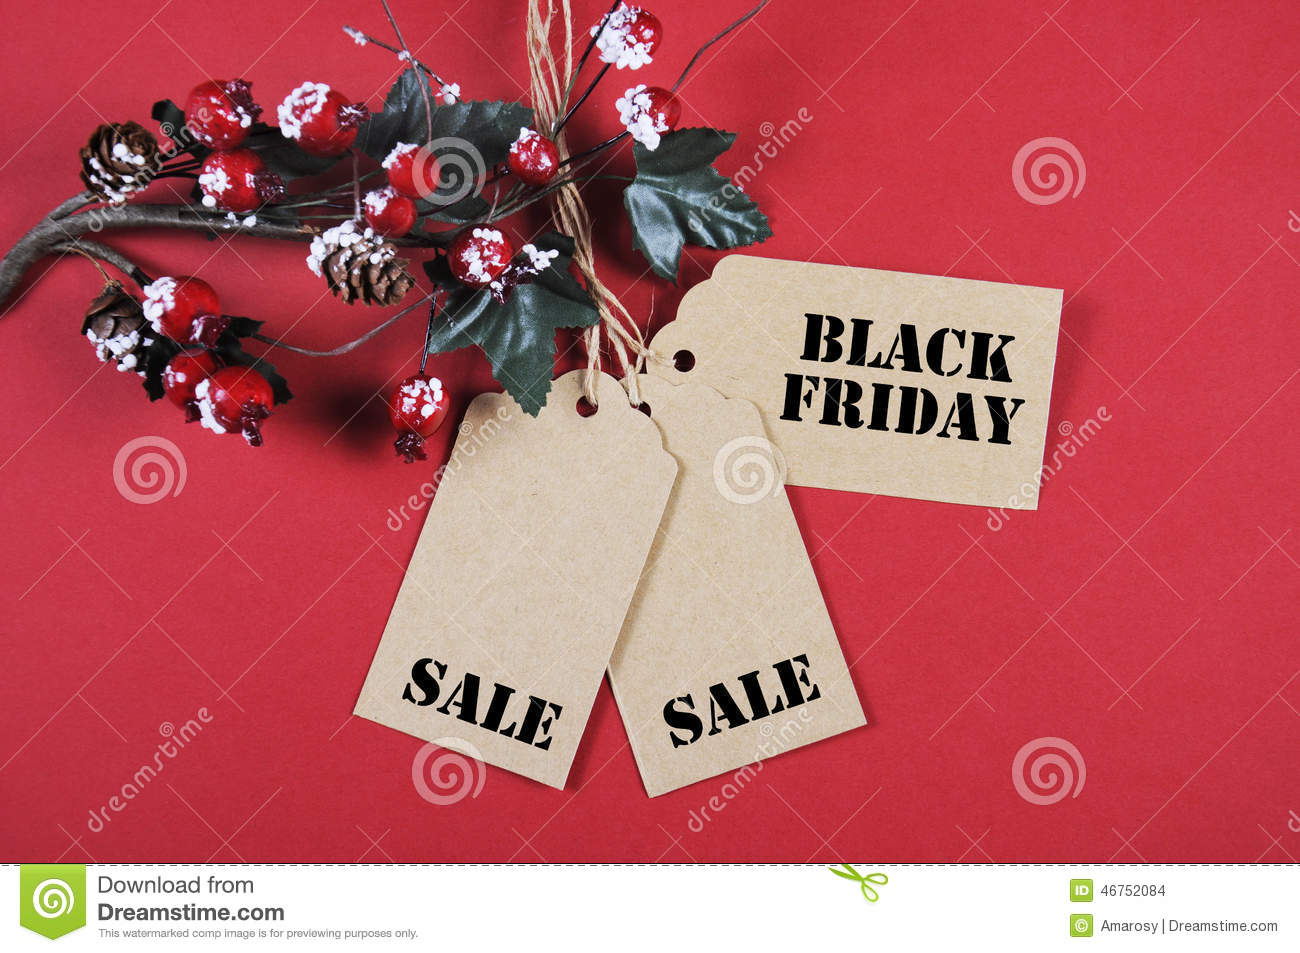 Black Friday Christmas Decorations.Black Friday Sale Tags With Christmas Decorations Stock